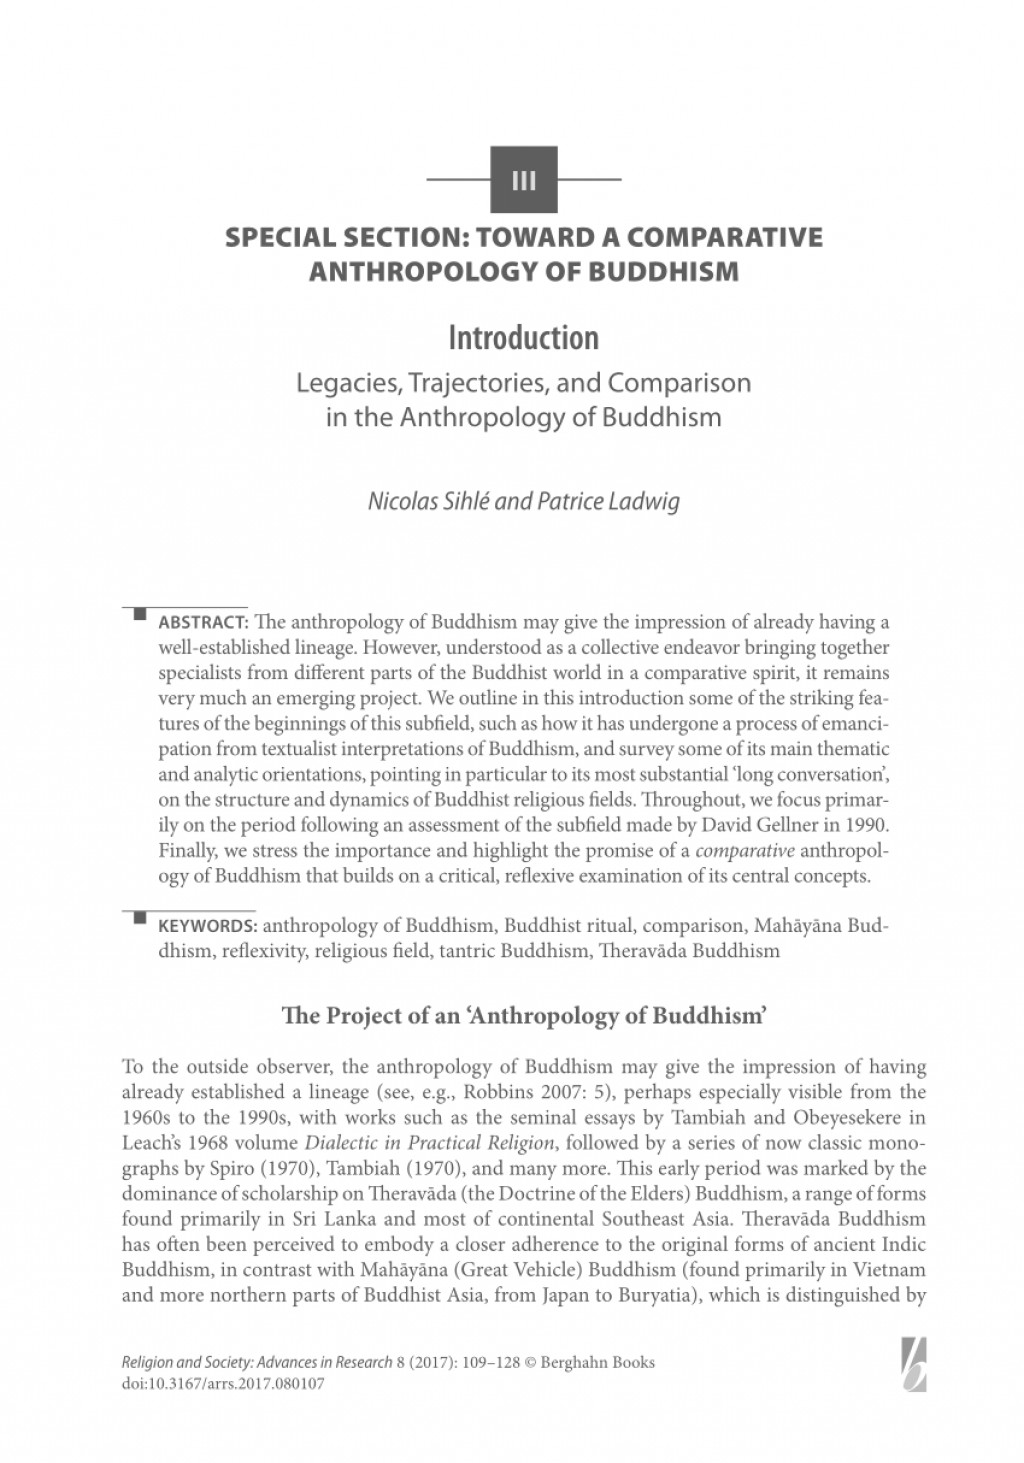 008 Anthropology Of Religion Research Paper Topics Fearsome Large